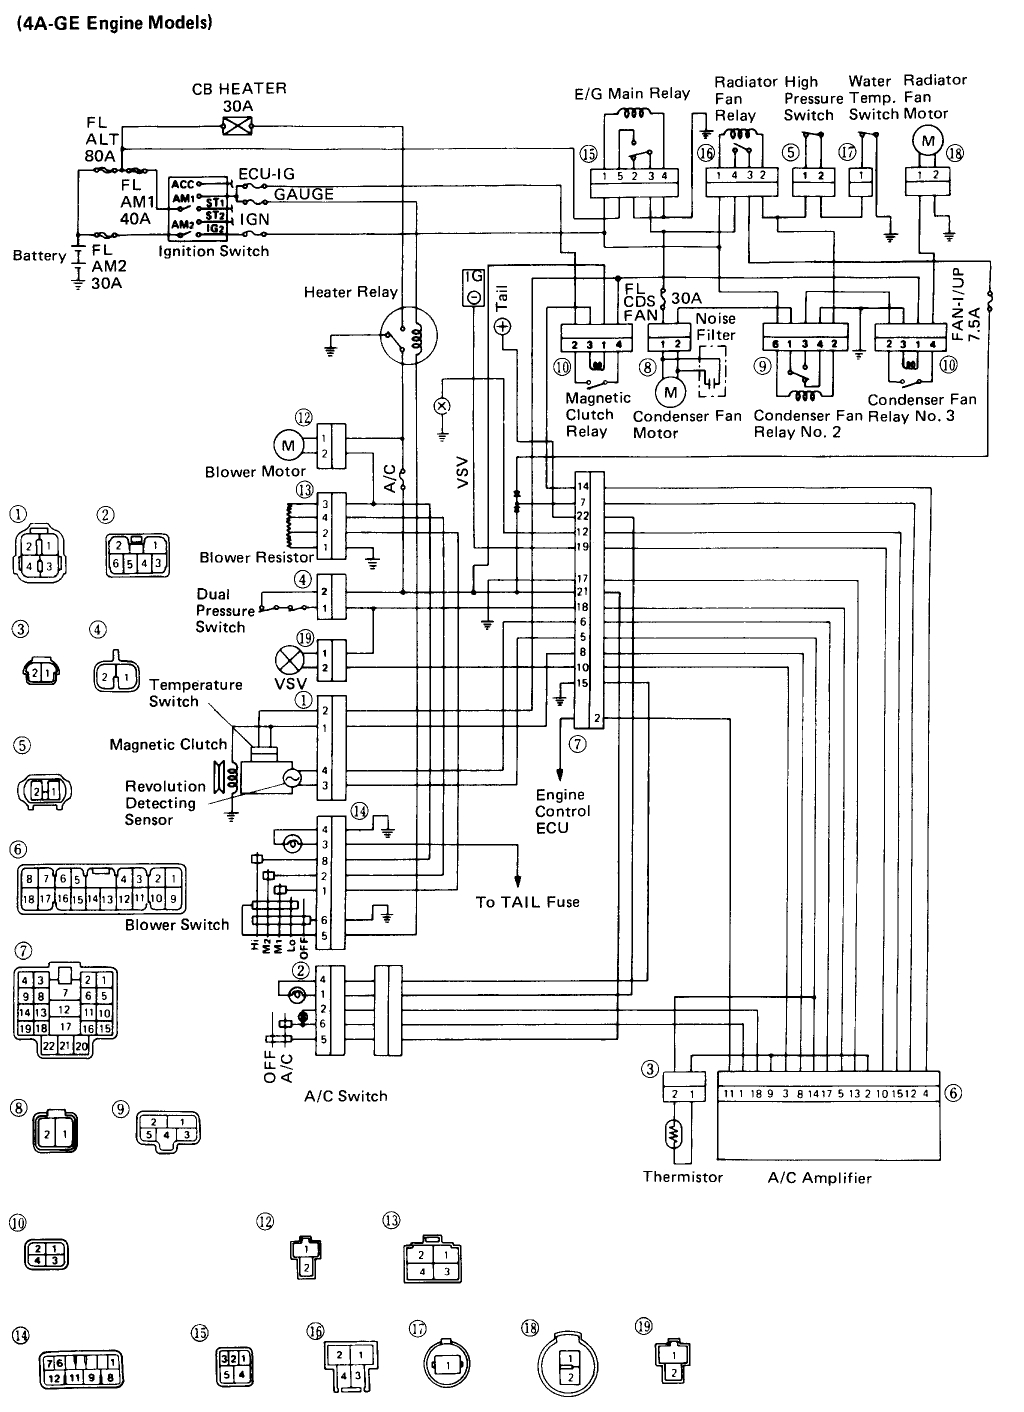 1993 Toyota Corolla Air Conditioning Wiring Diagram on 2008 toyota rav4 electrical wiring diagram